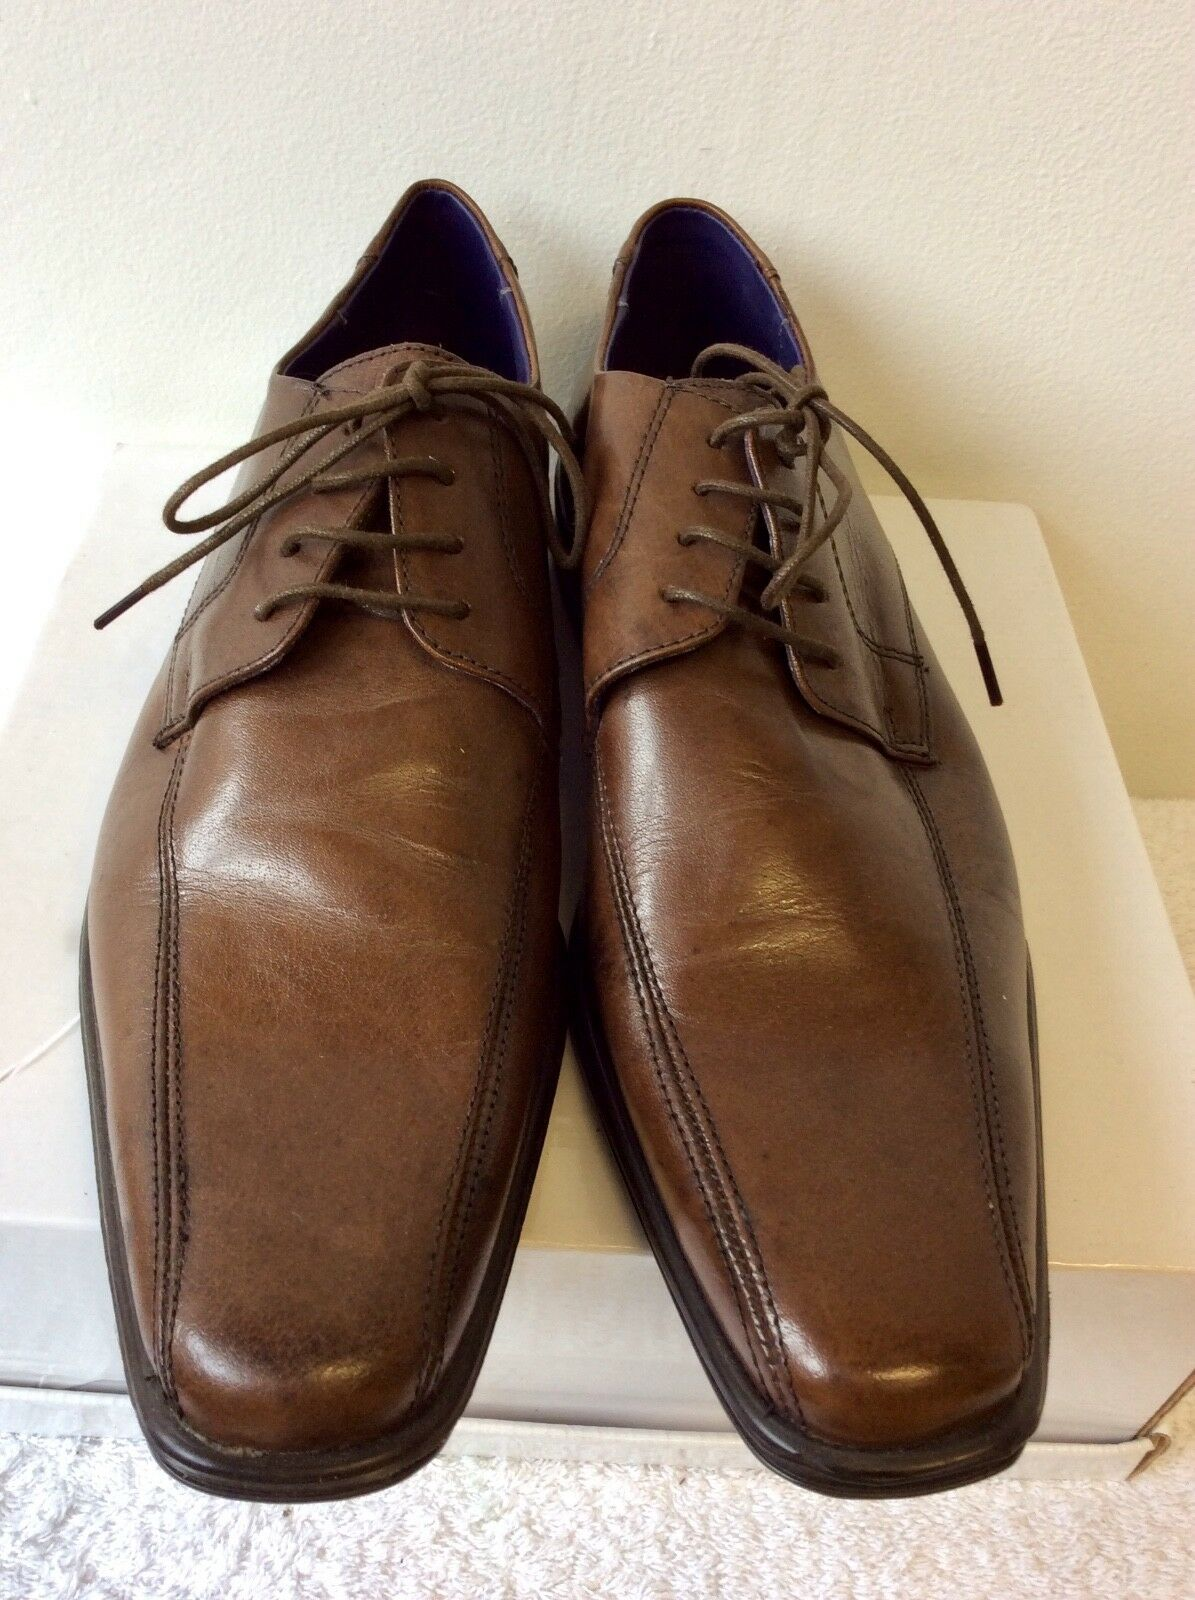 BRAND NEW TAYLOR & WRIGHT BROWN LEATHER LACE UP SHOES SIZE 9 44